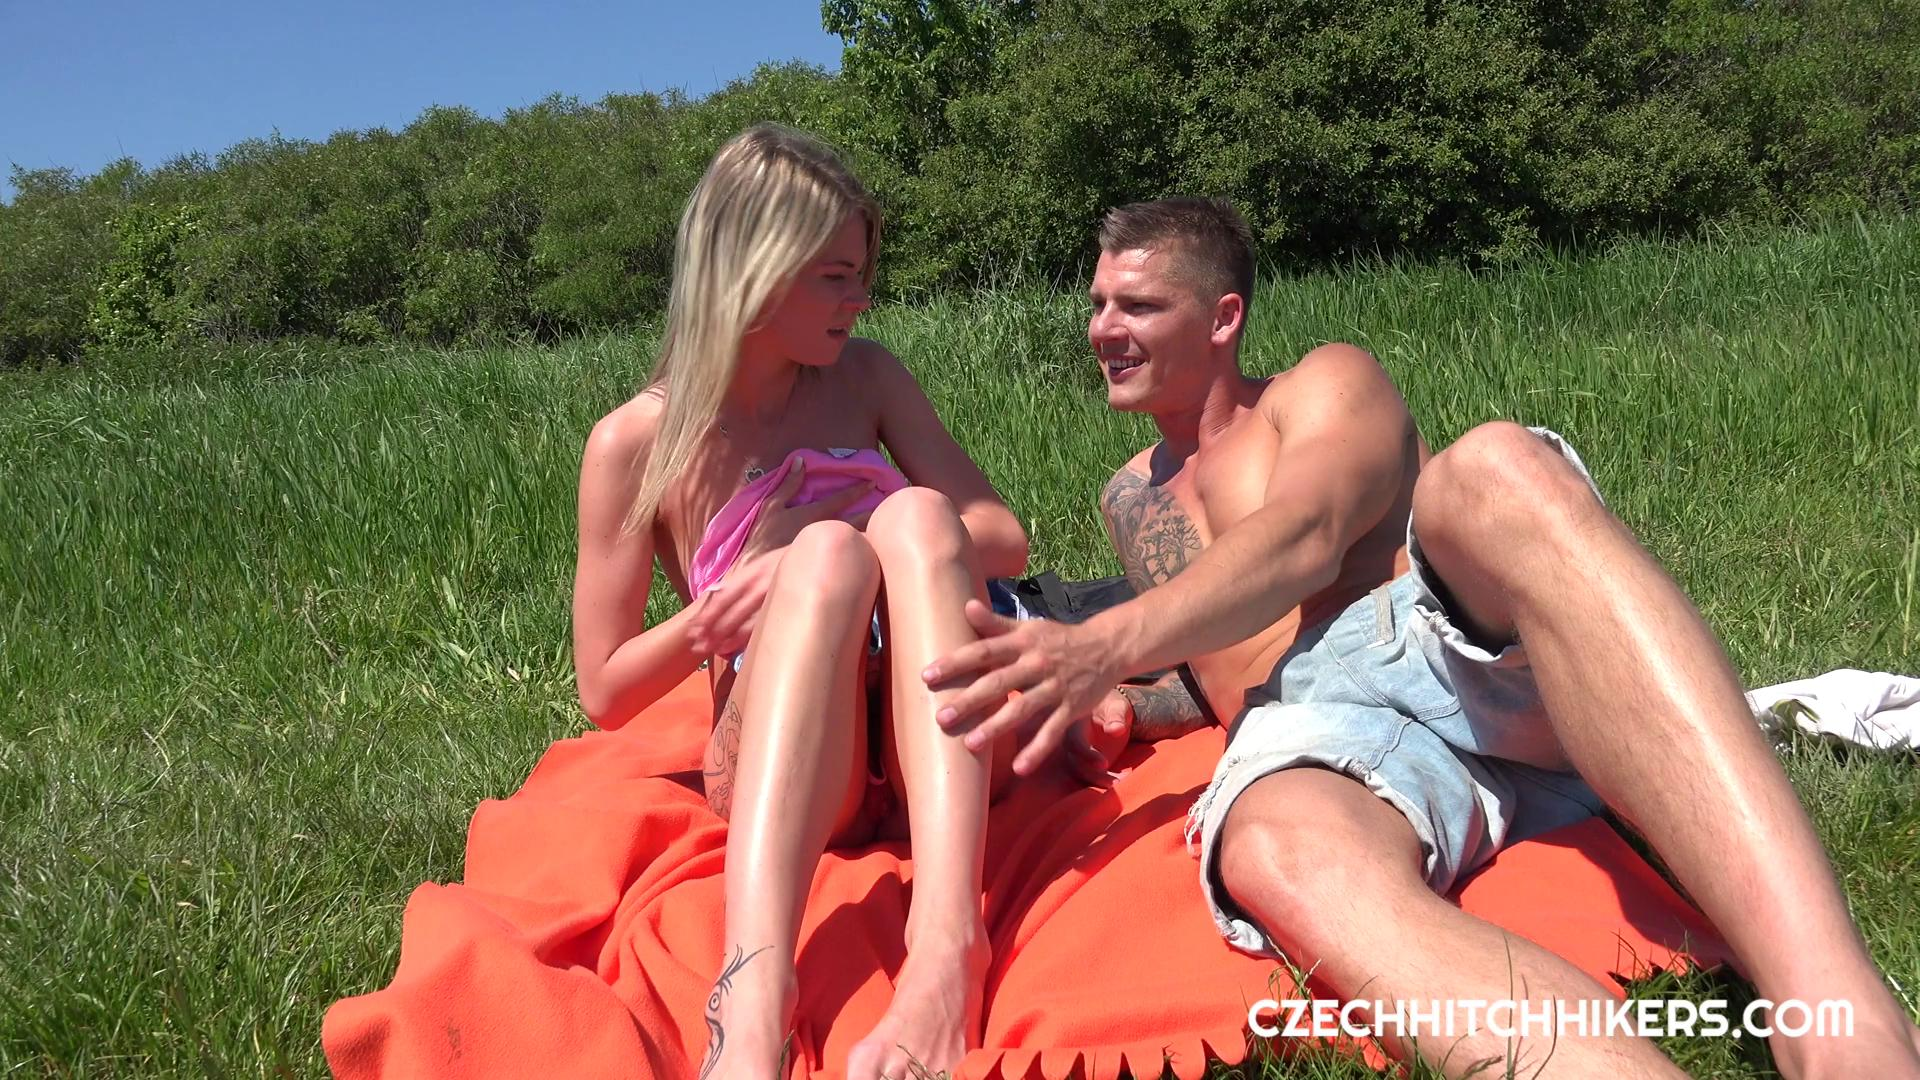 CzechHitchHickers – Claudia Macc Fucked Outside CZECH